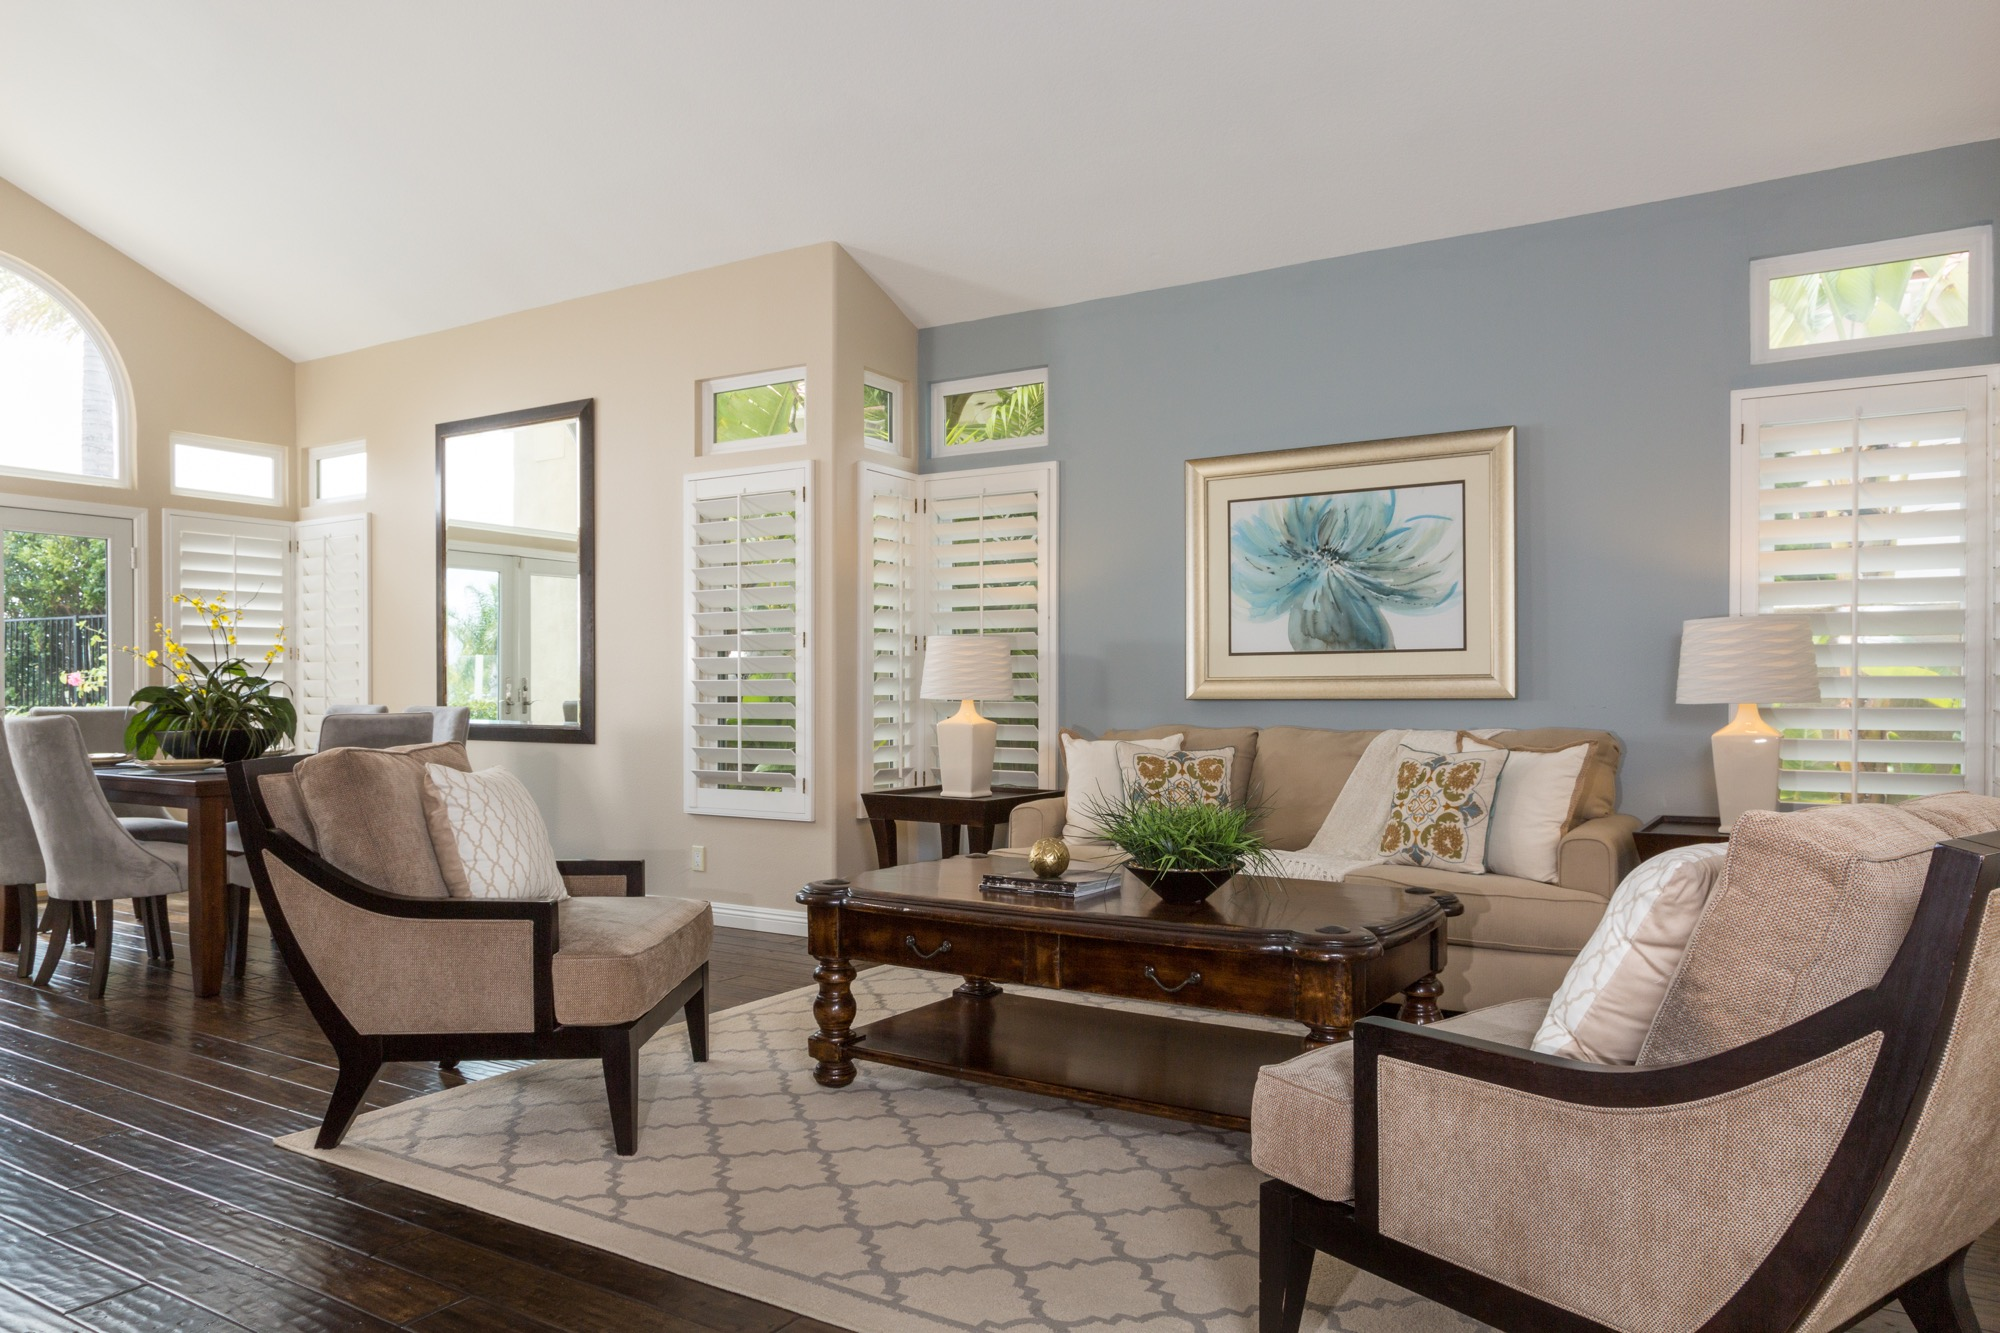 Find The Best Home Staging Company And Get Instant Quotes At White Orchid